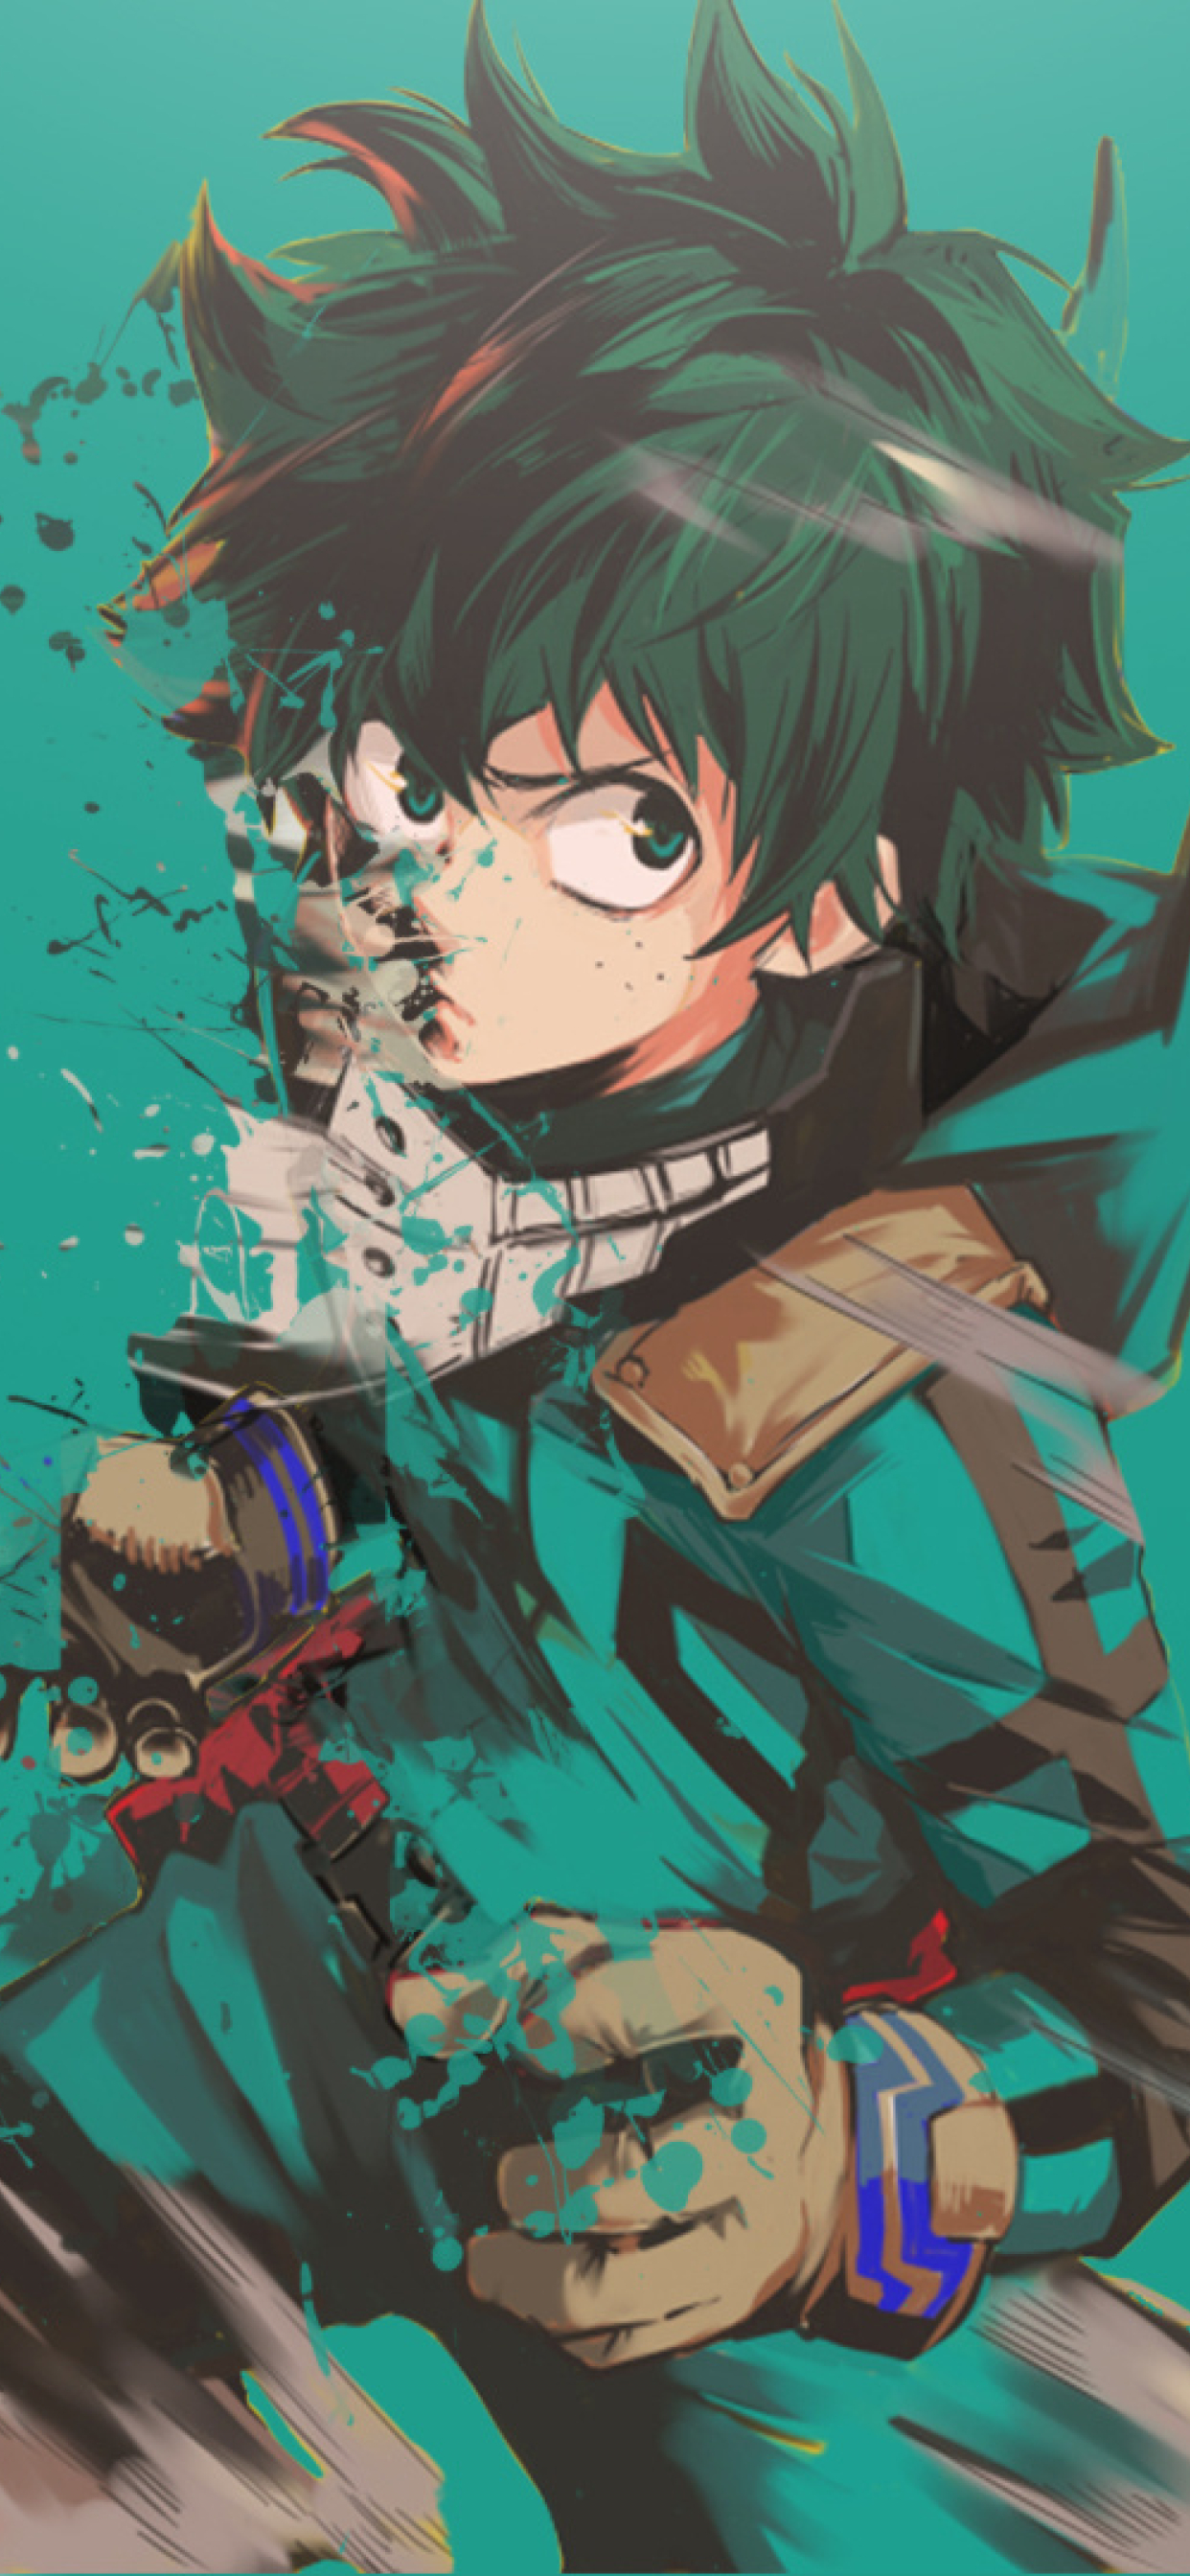 1242x2688 Boku No Hero Academia Midoriya Izuku Art Iphone Xs Max